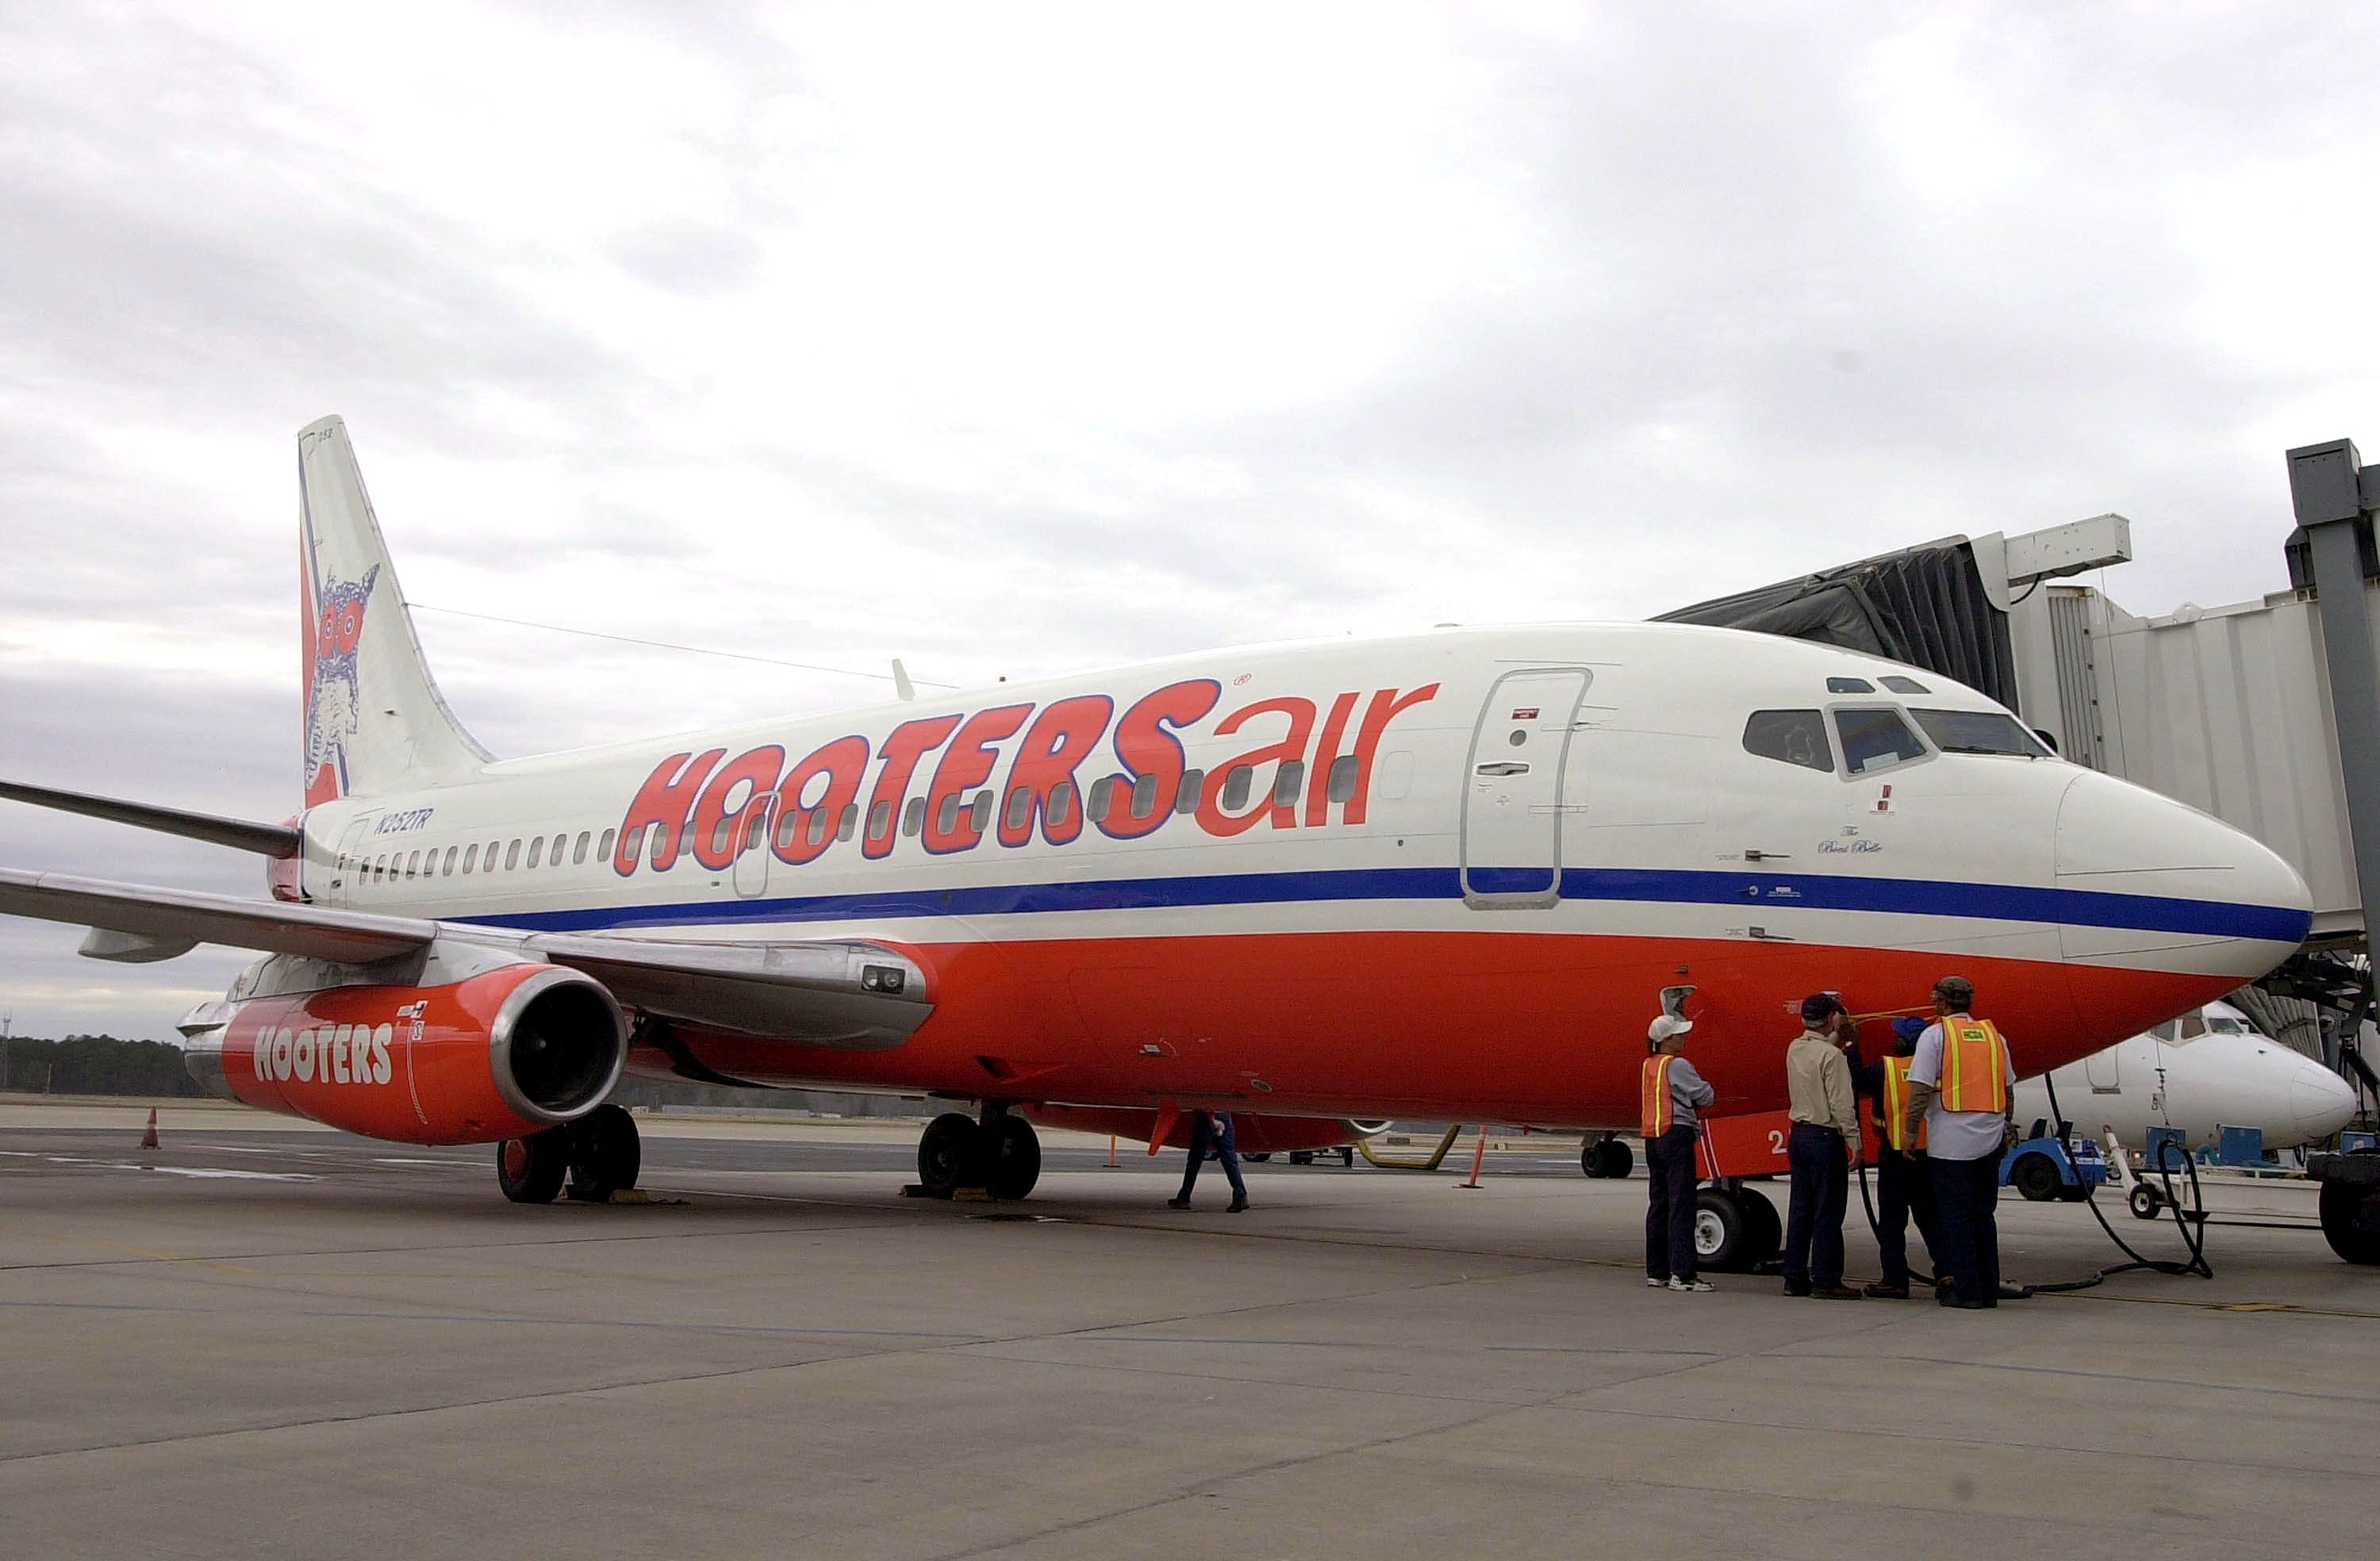 Hooters Air Launched By Hooters Restaurant Chain